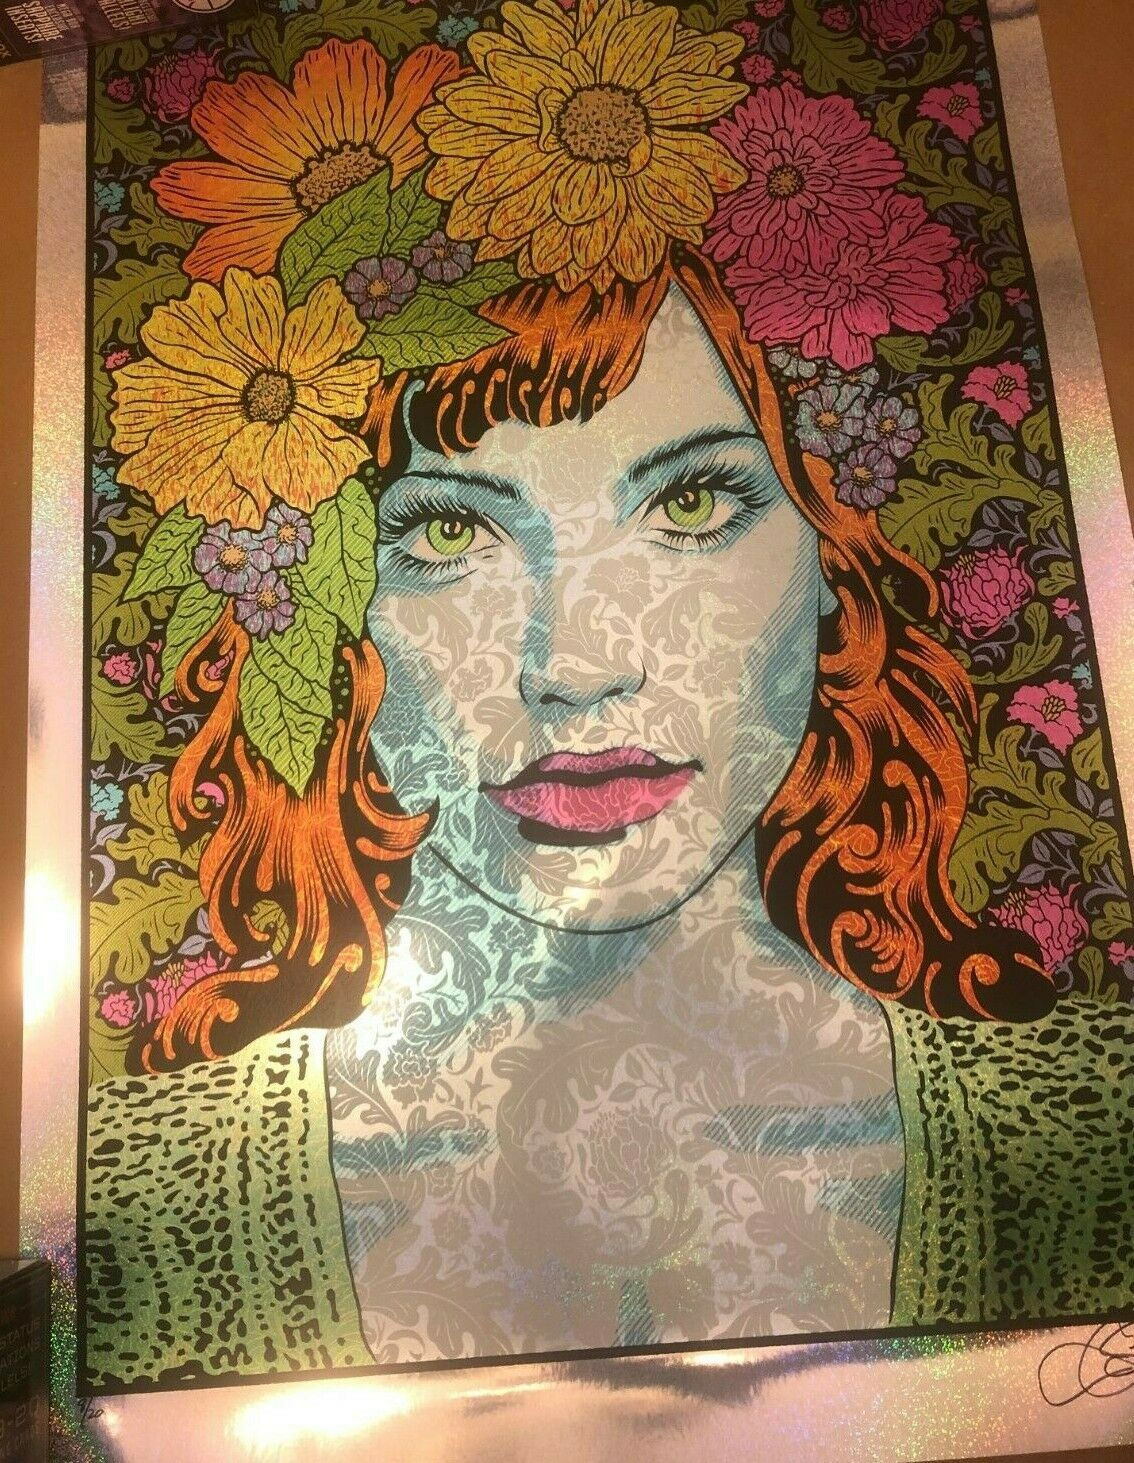 Chuck Sperry Empathy 2020 Sparkle Foil Screen Art Print Signed Edition #08 of 20